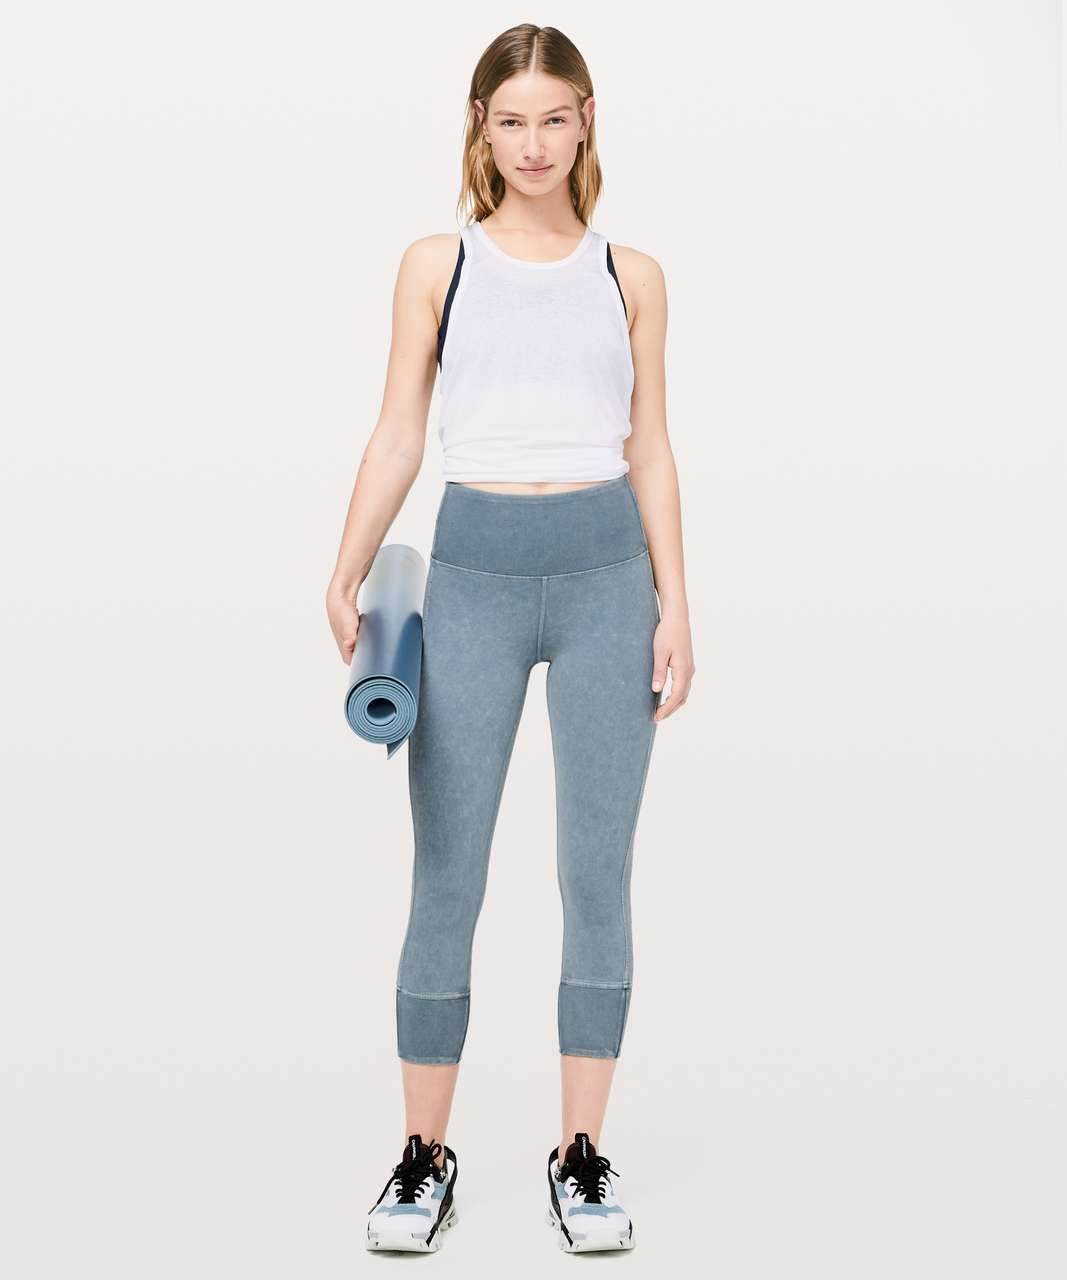 "Lululemon Wunder Under Crop 23"" *Ribbed - Washed Moon Blue"